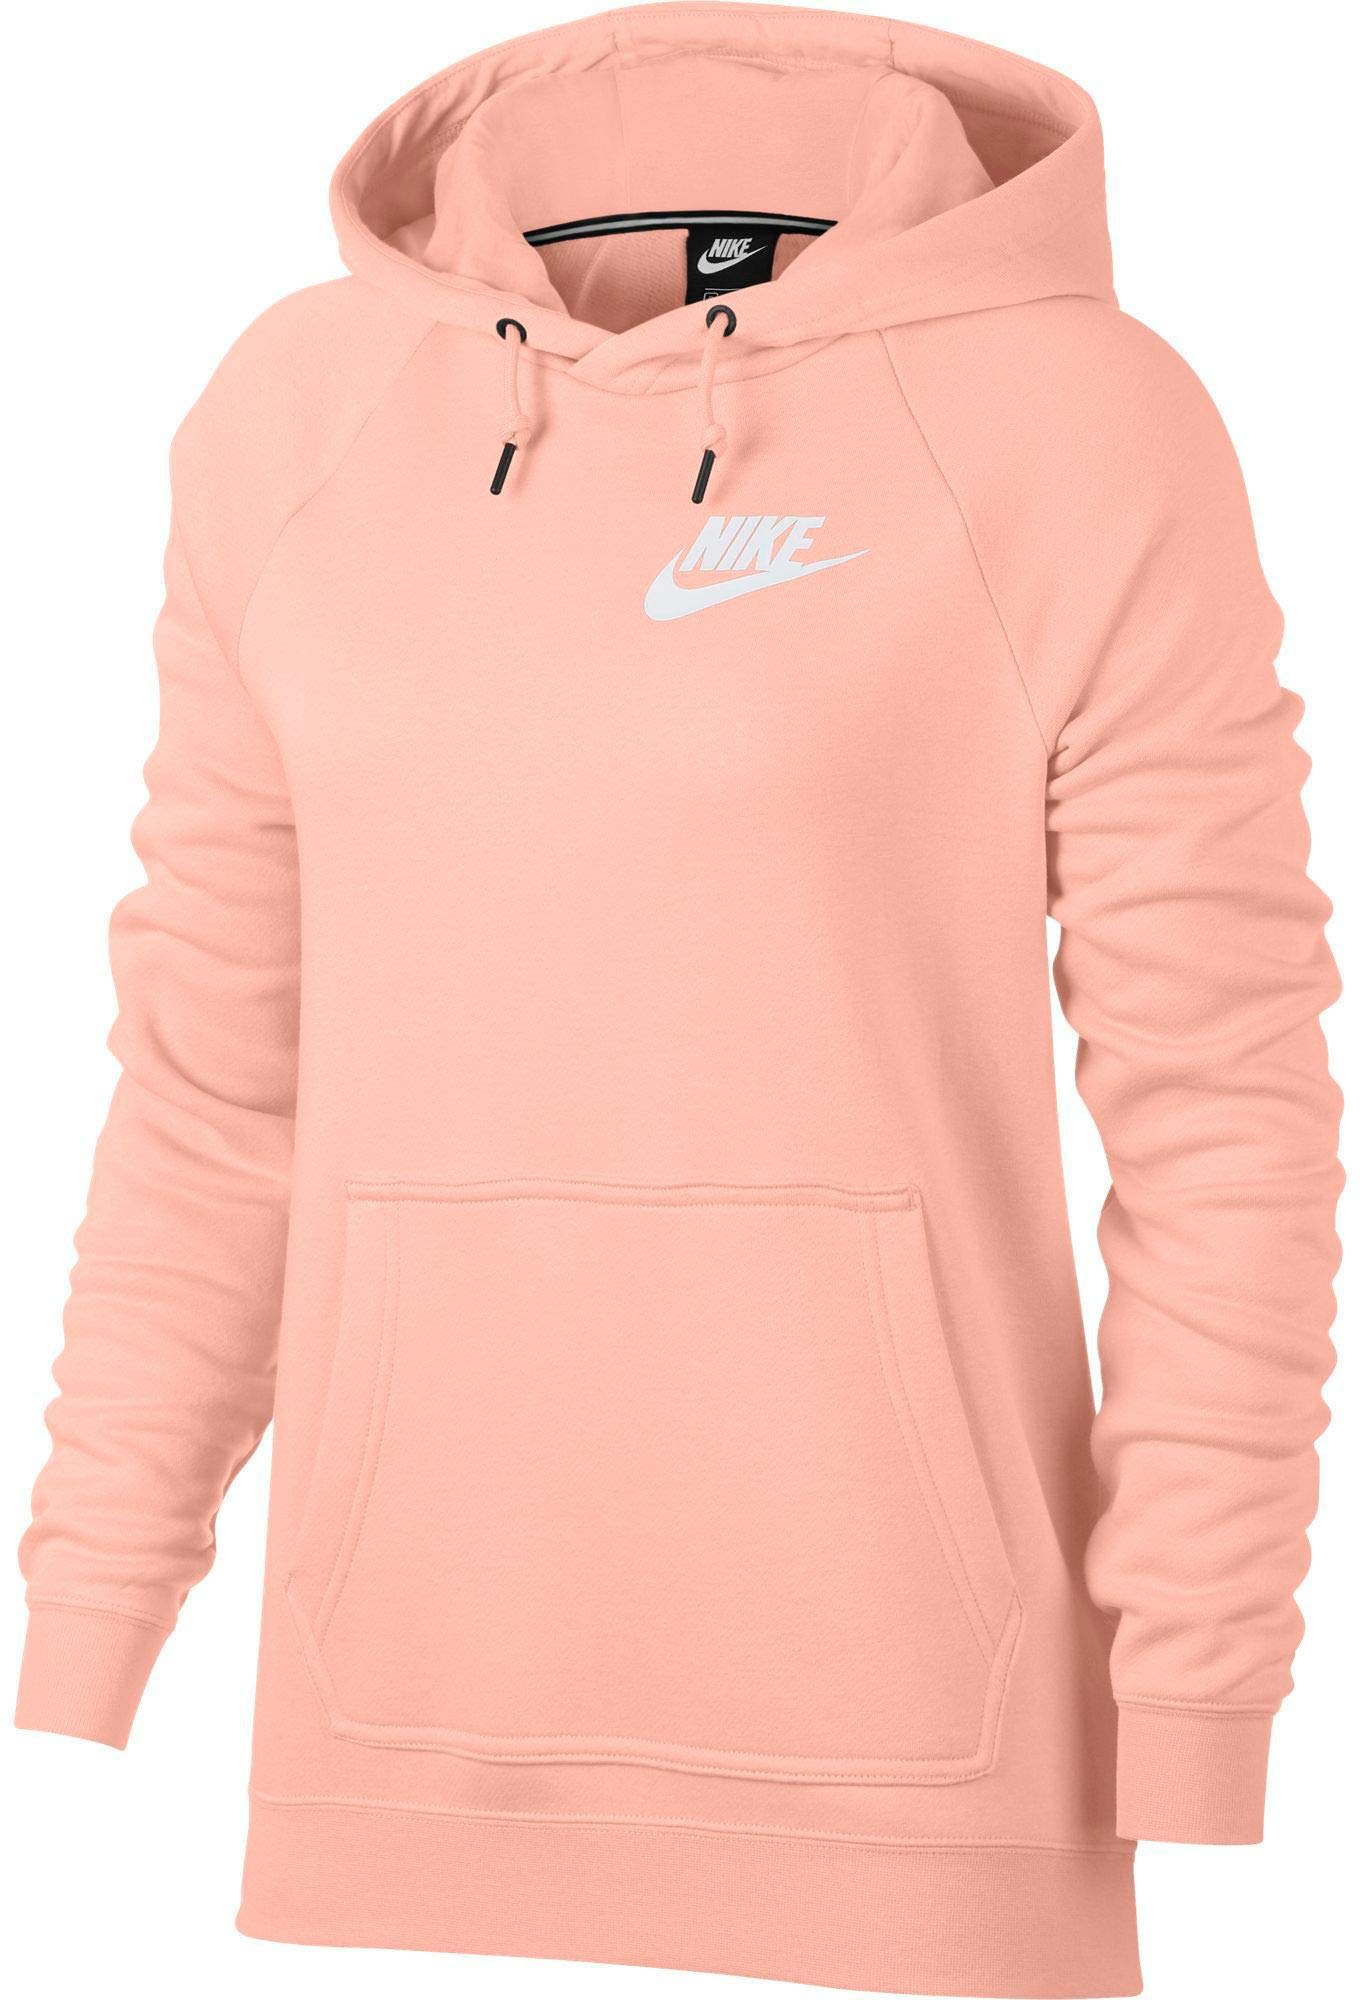 Nike Womens Rally Pull Over Hoodie Storm Pink/Heather/Sail AJ6315-646-Size X-Small